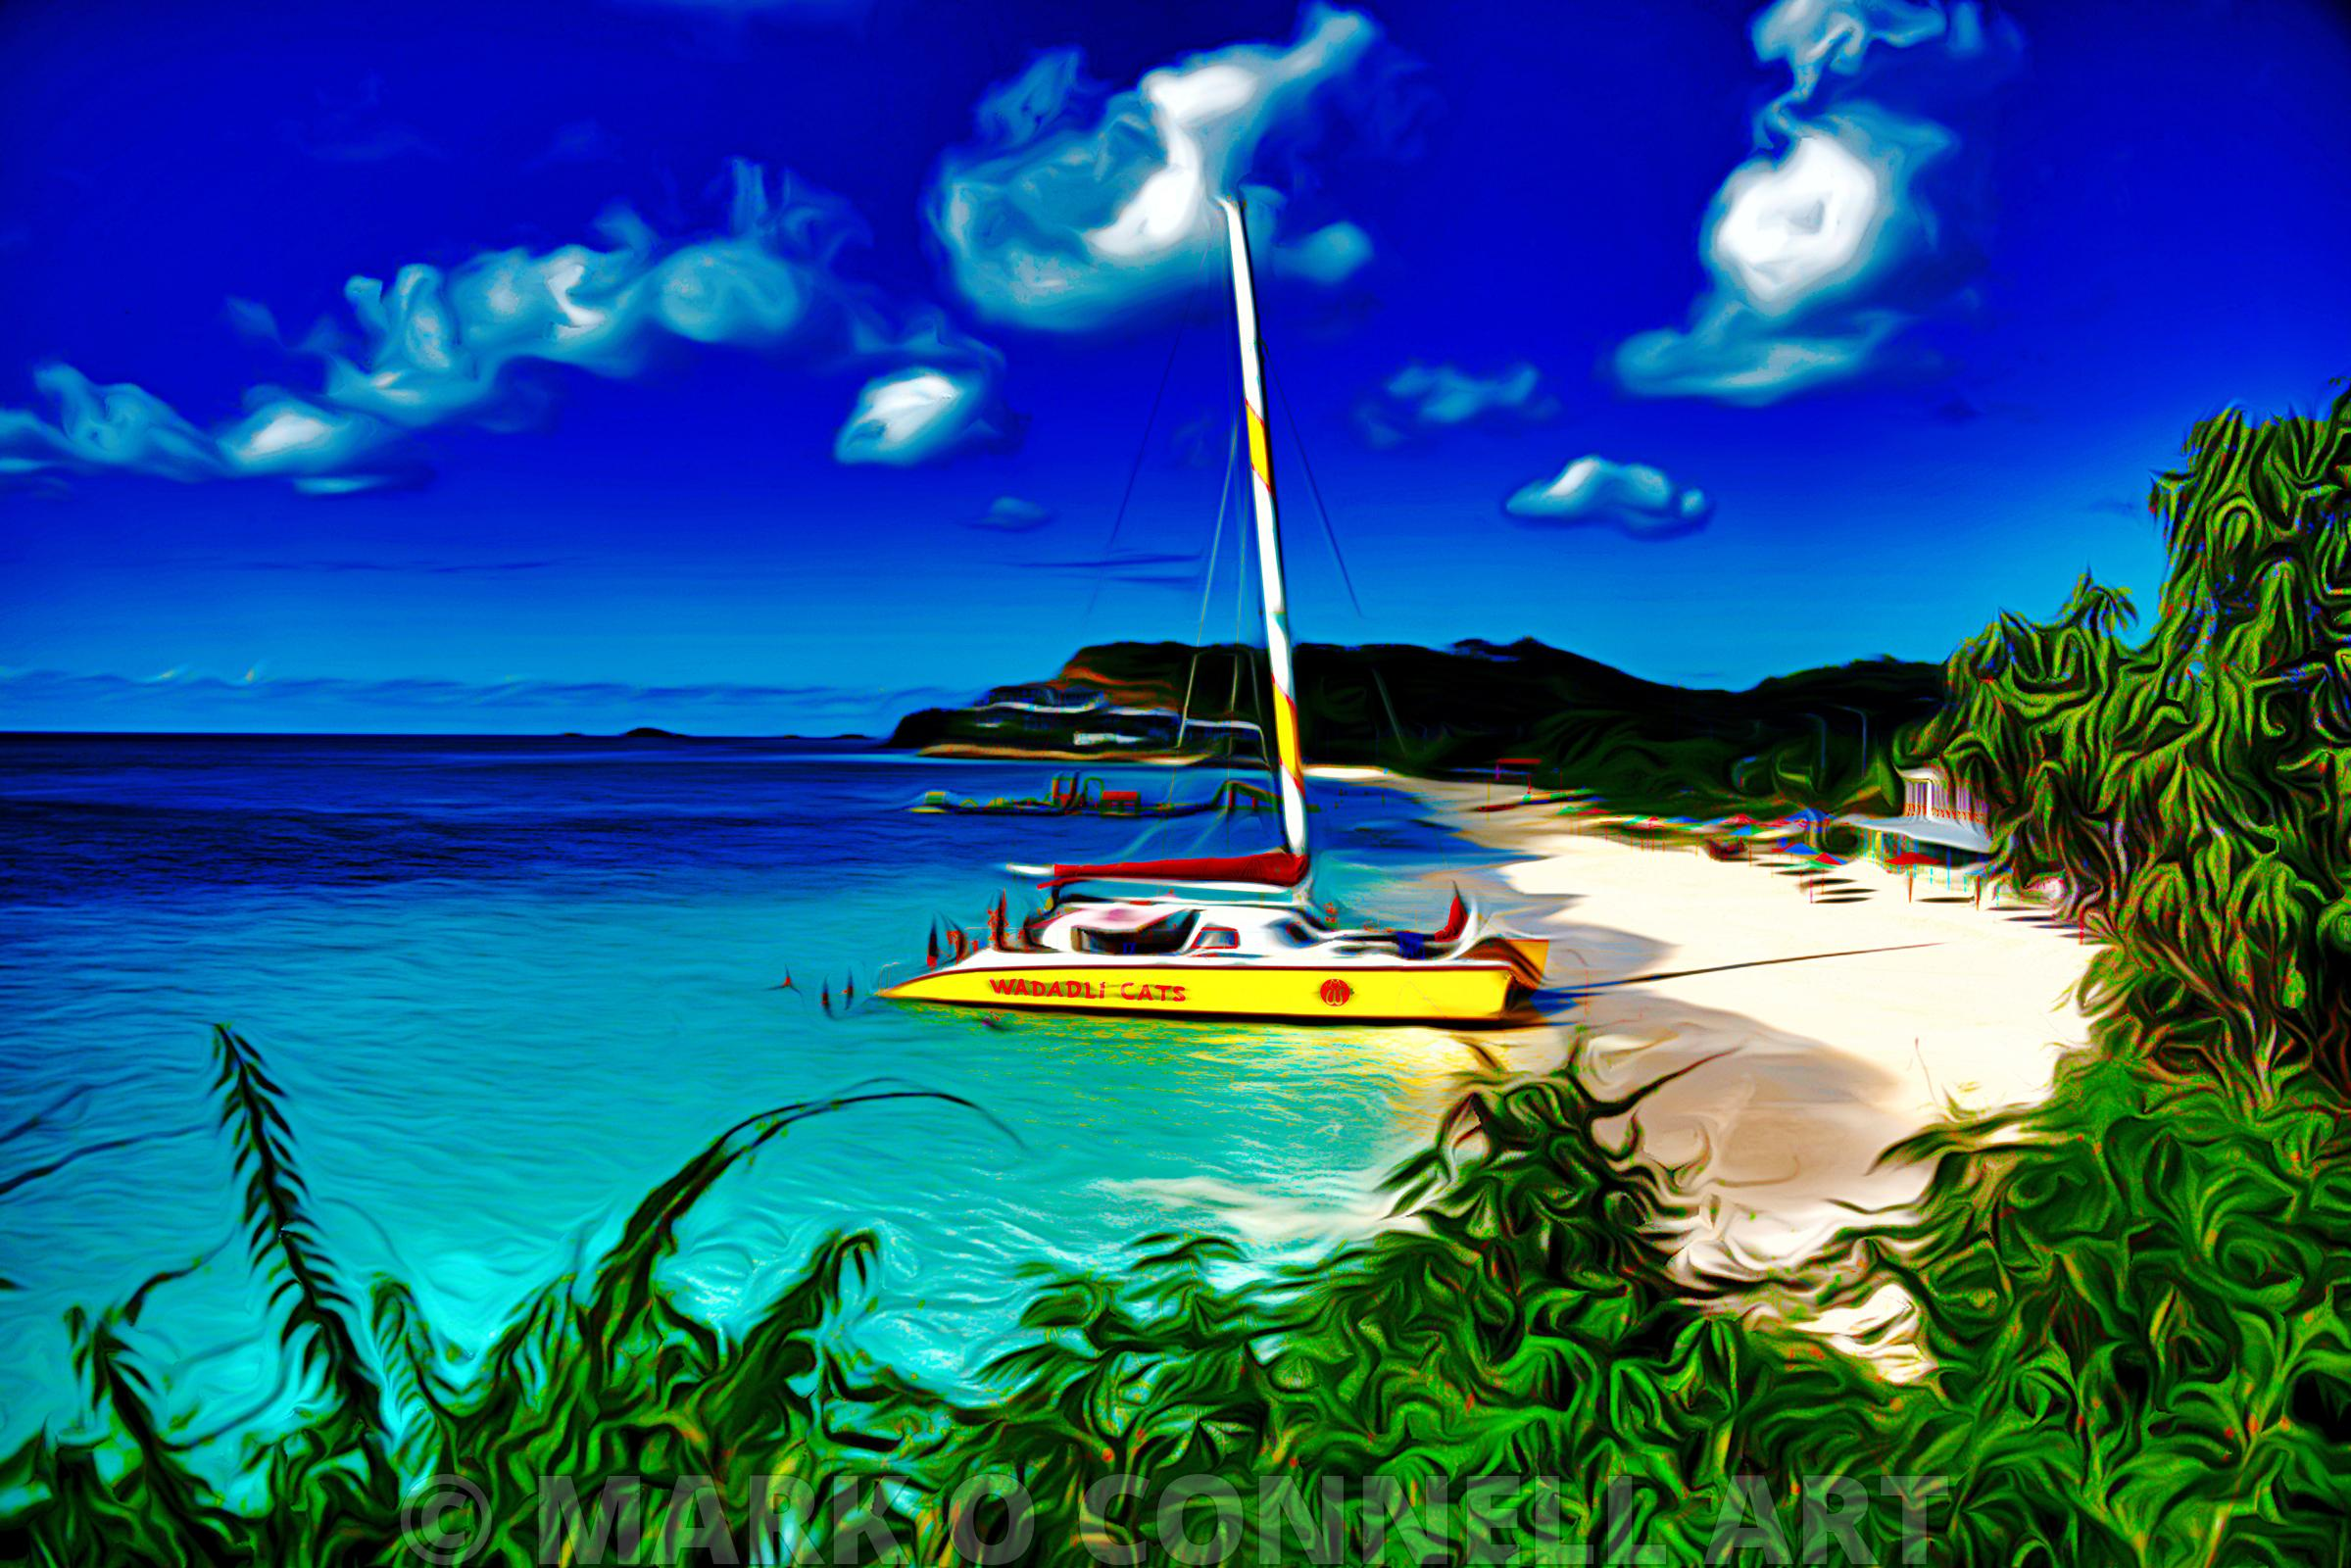 Antigua,Caribbean,airbrush,painting,art,catamaran,beach,water,ocean,sea